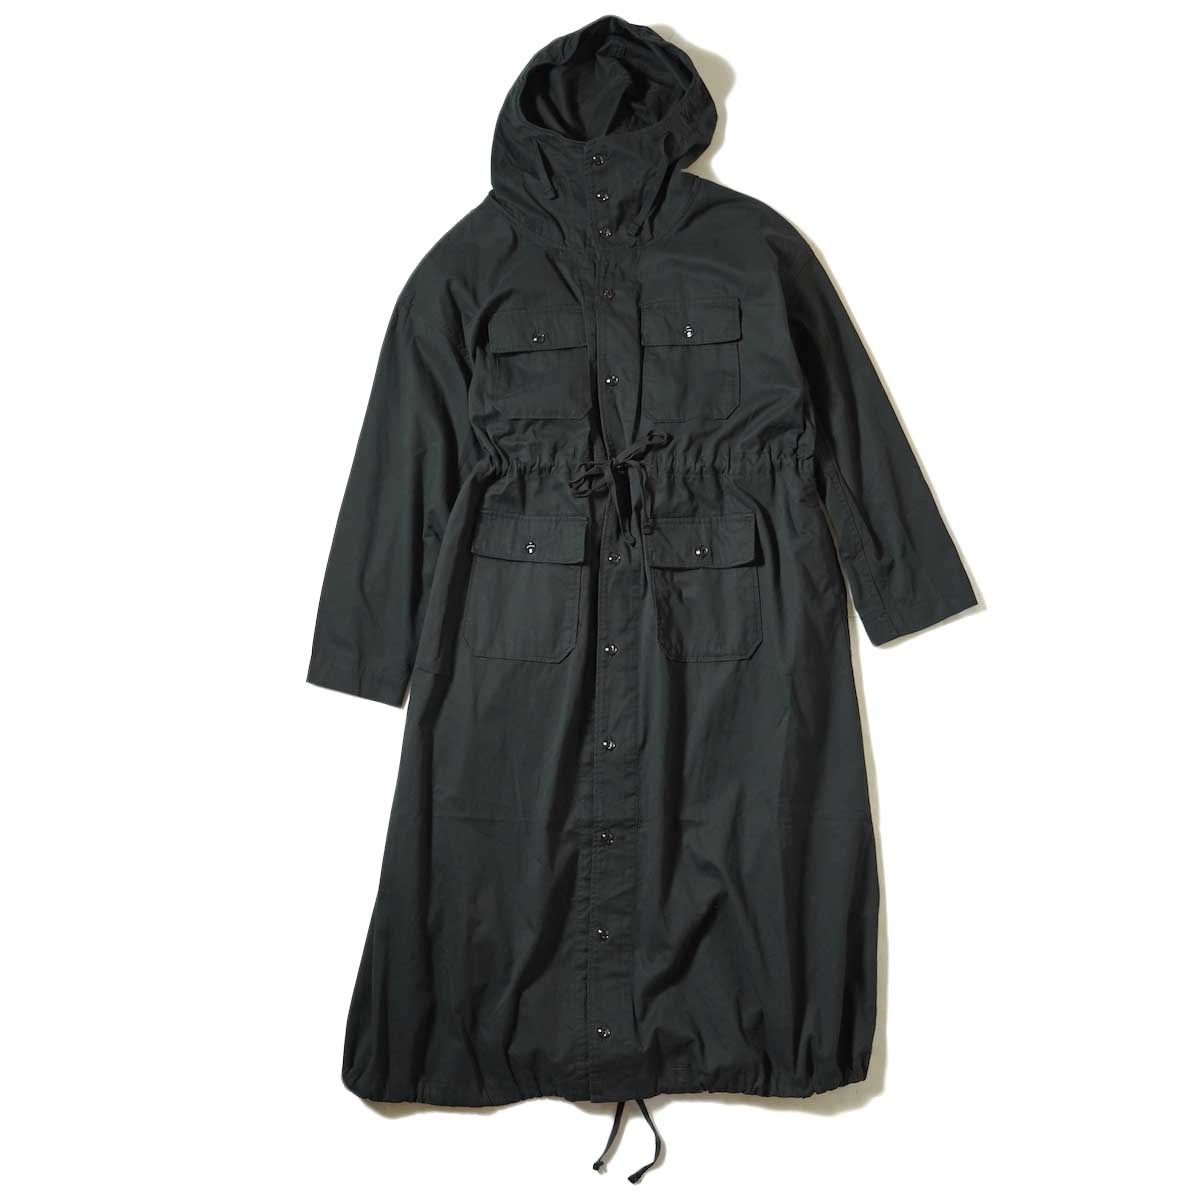 Engineered Garments / Cagoule Dress (Black Cotton Micro Sanded Twill)